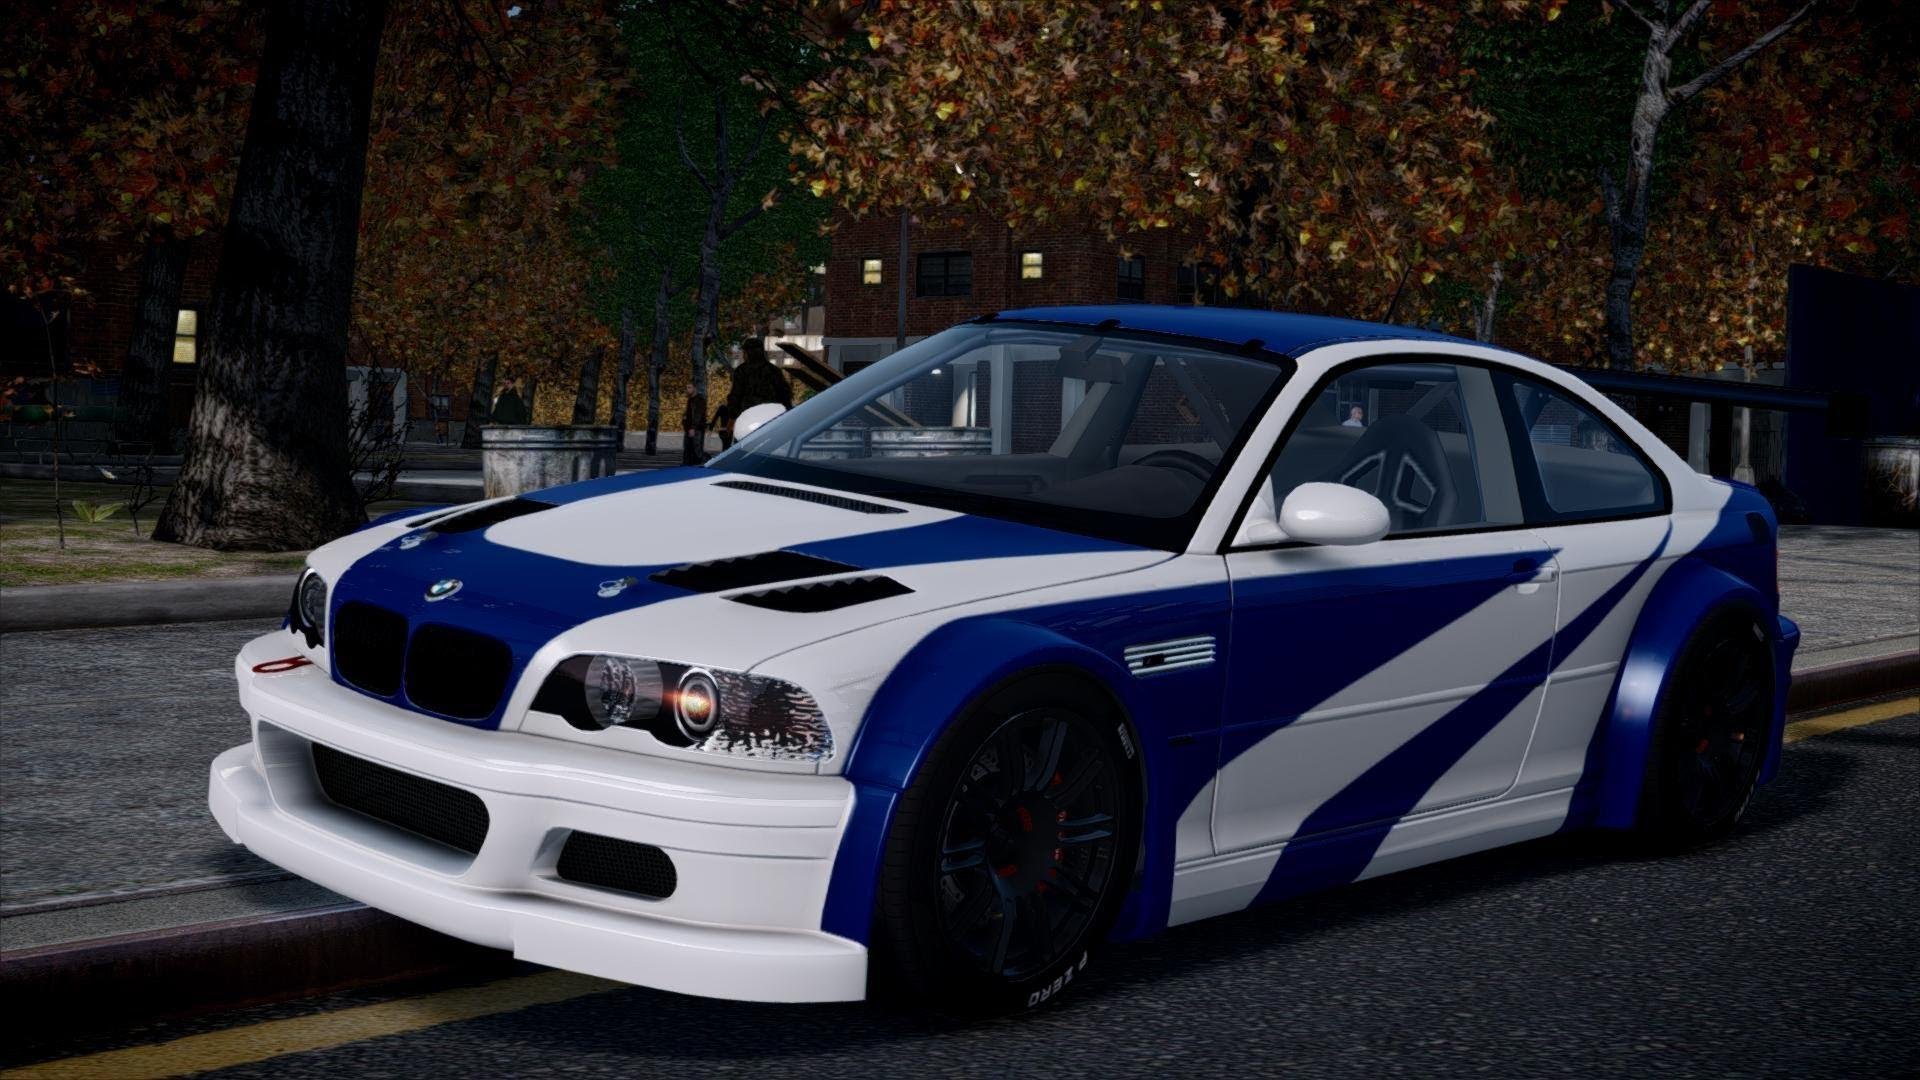 2013 Bmw M3 Gtr Pictures to Pin